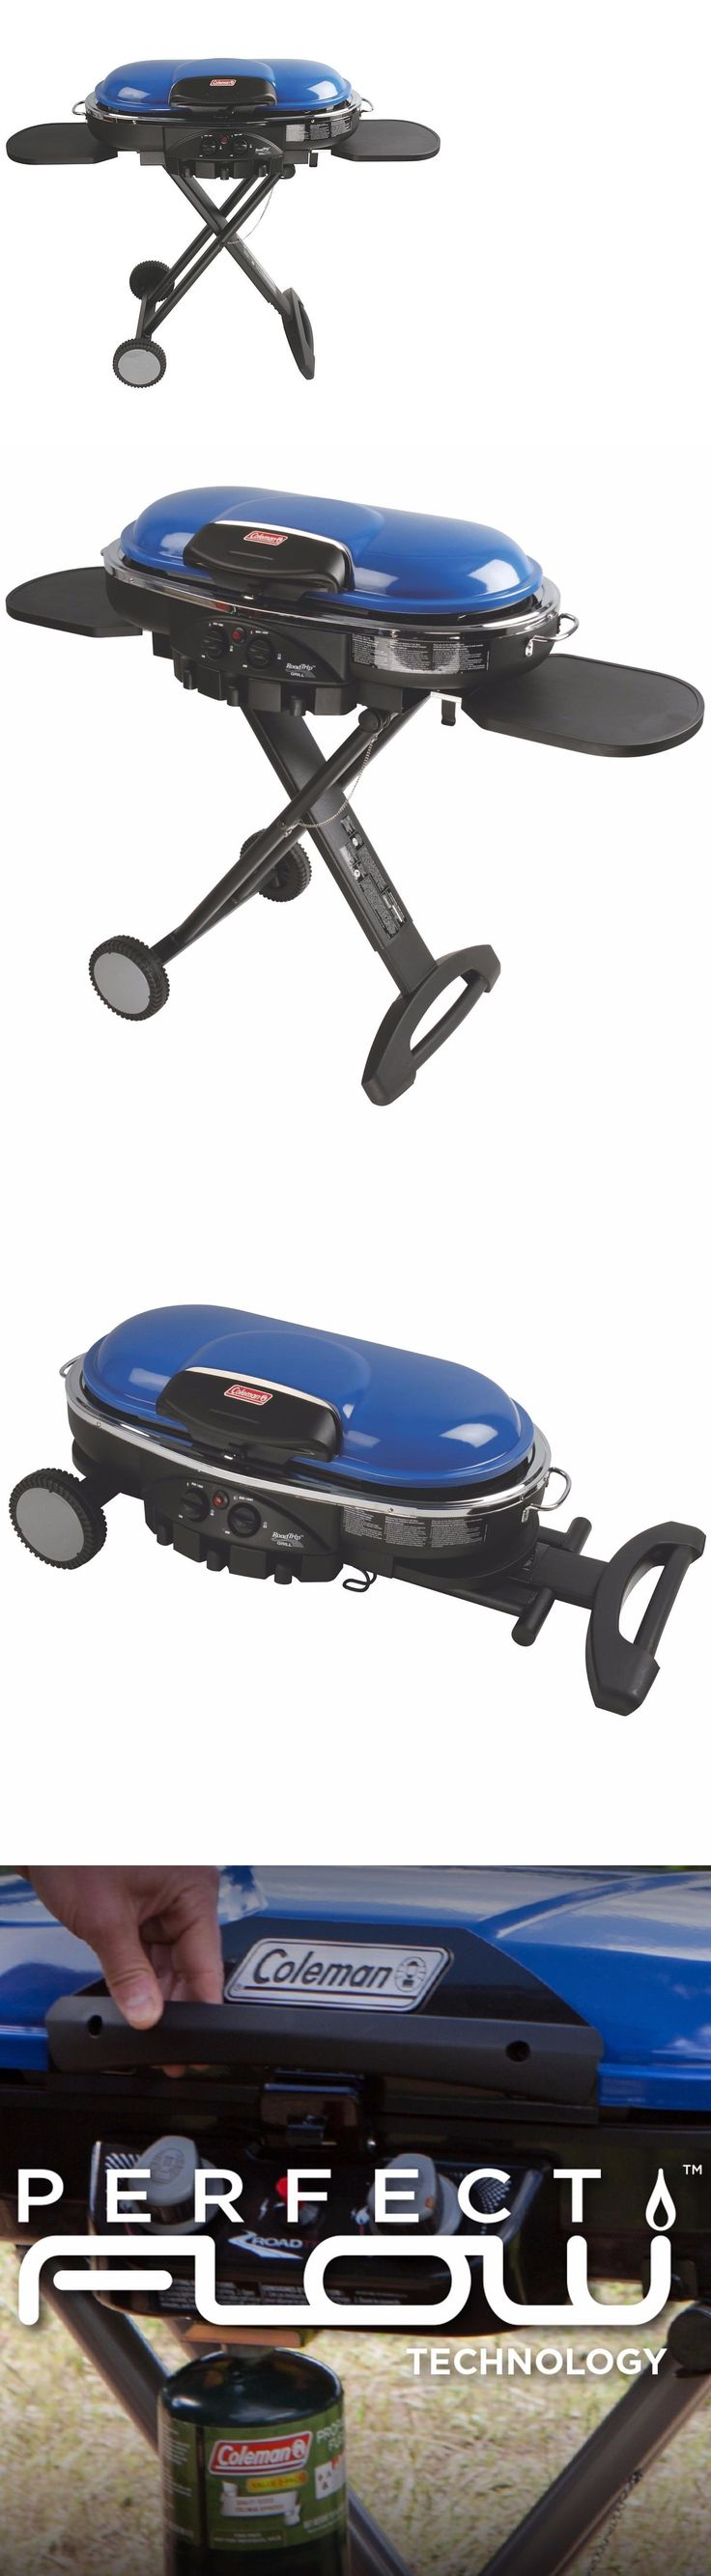 Barbecues Grills and Smokers 151621: New Coleman Road Trip Lxe Propane Gas Grill Camping Outdoor Portable 285 -> BUY IT NOW ONLY: $159.99 on eBay!